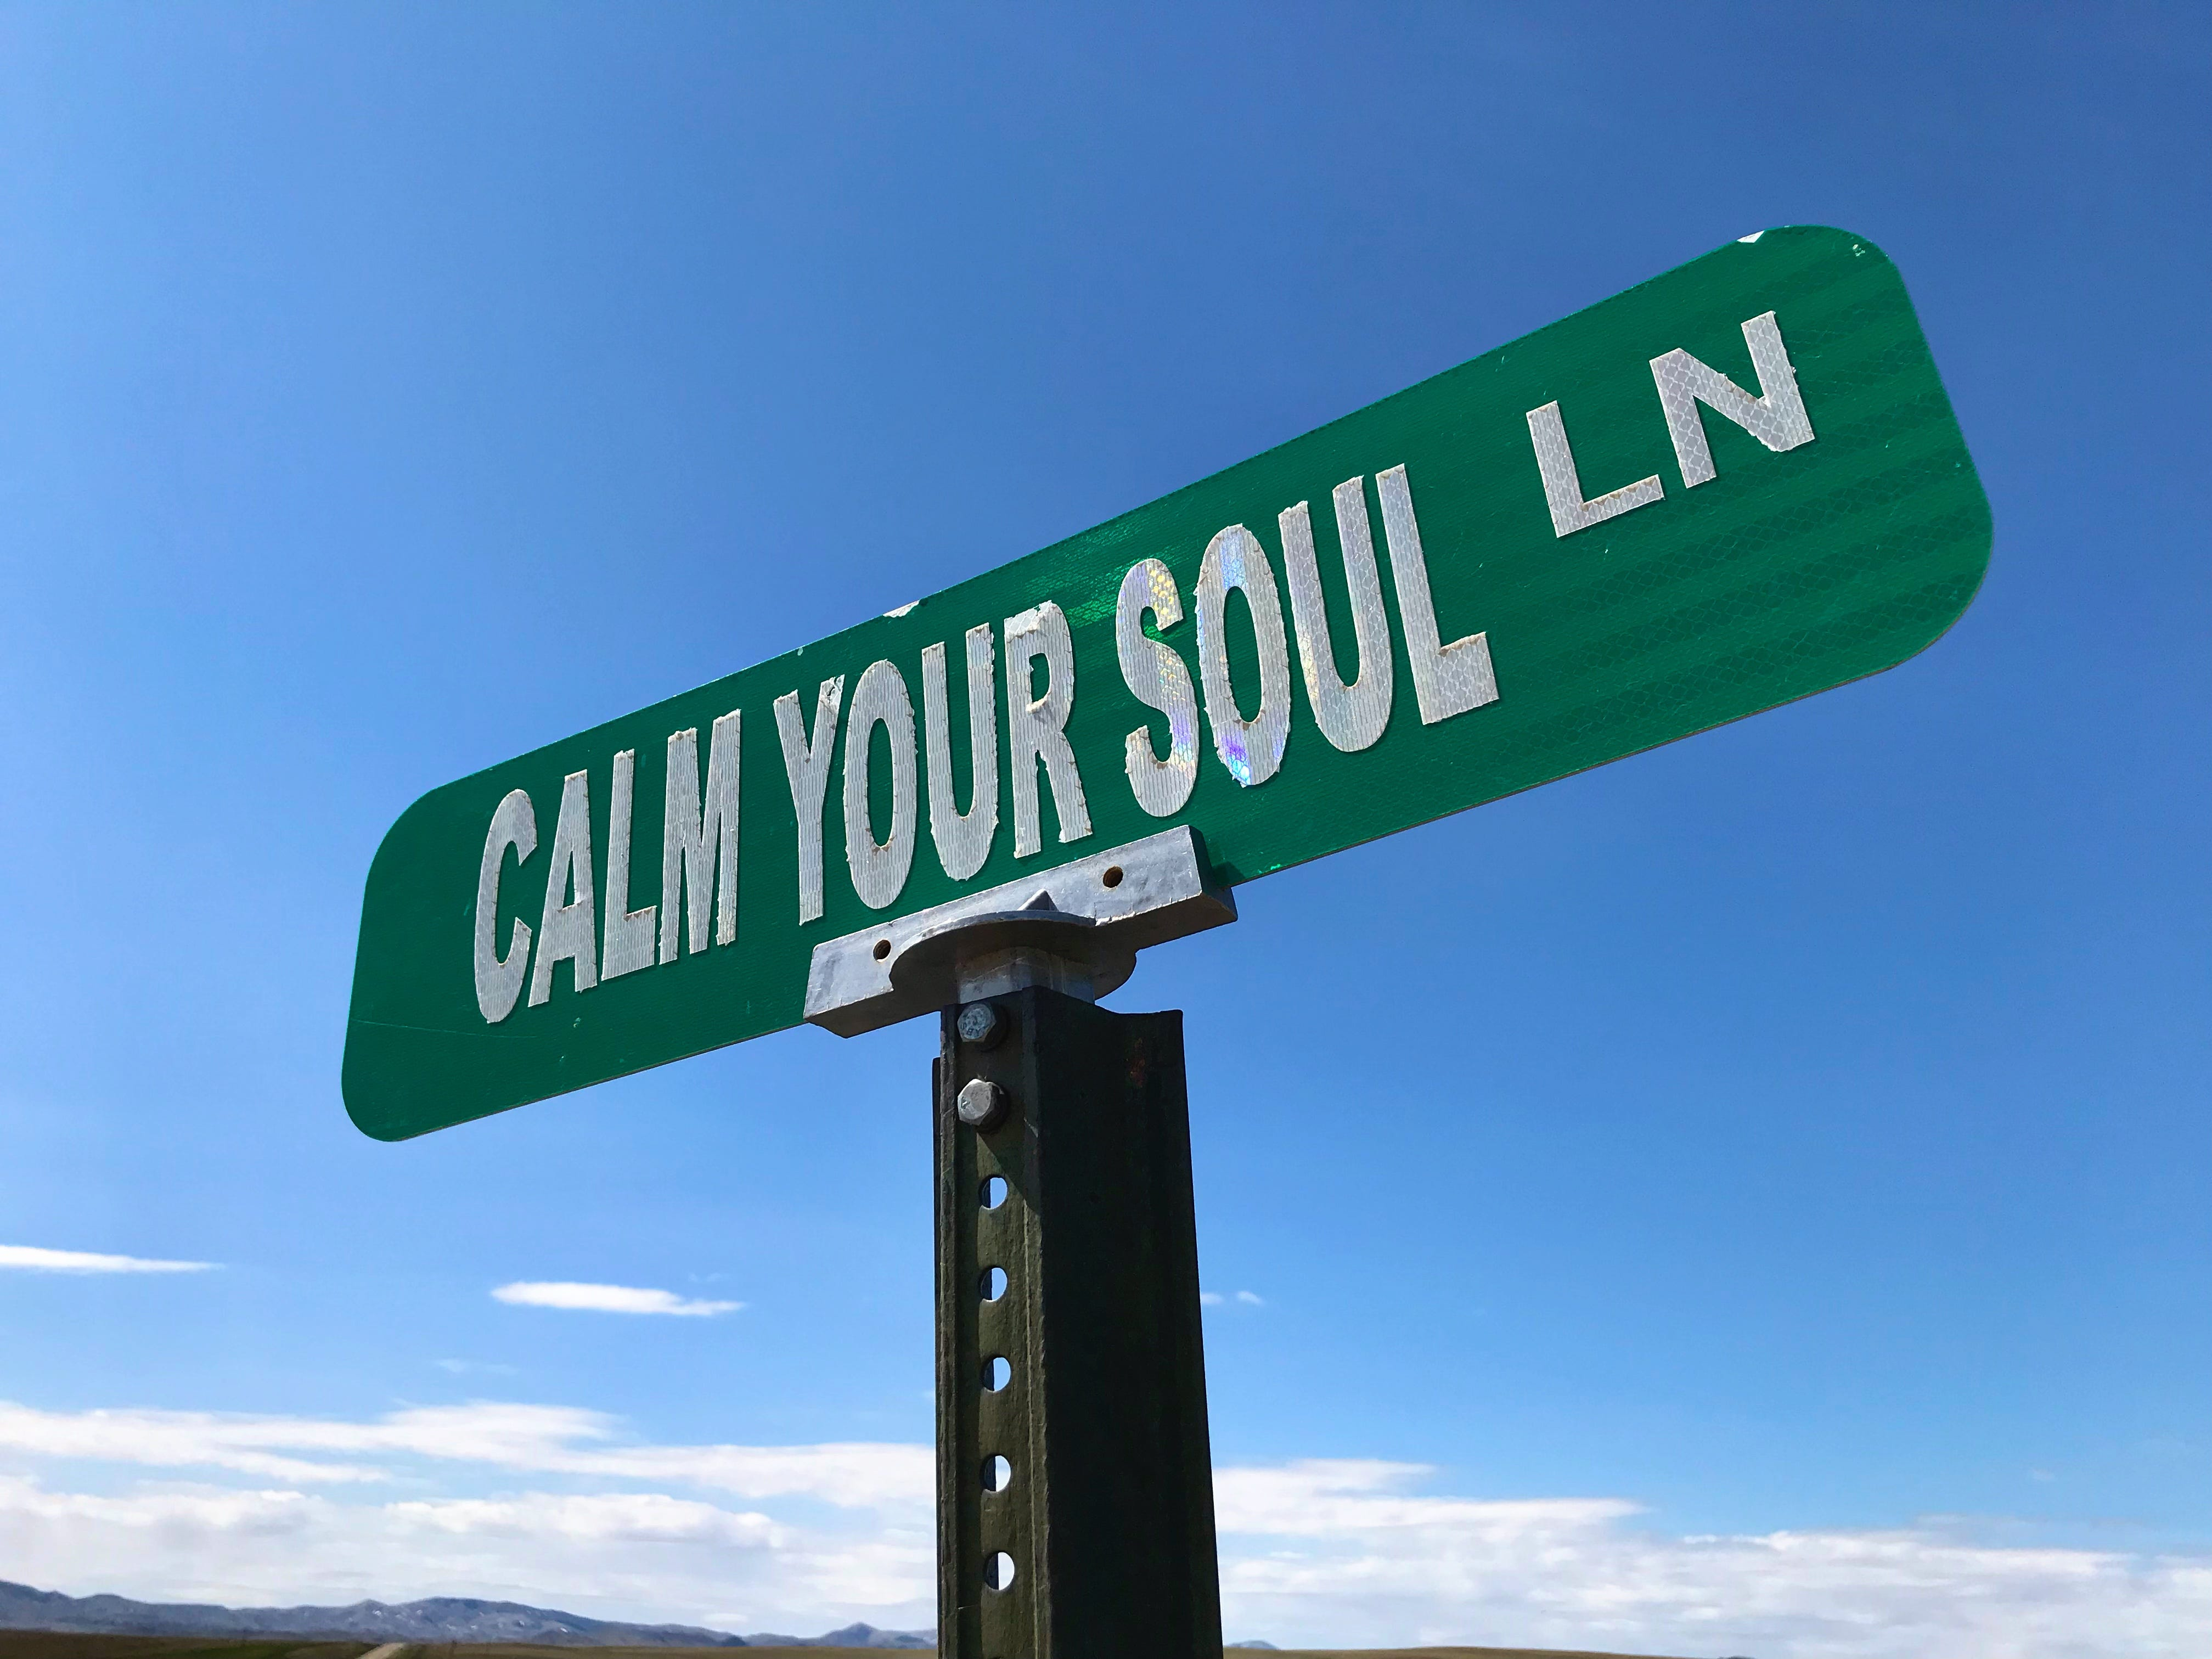 Calm Your Soul Lane is south of Chinook